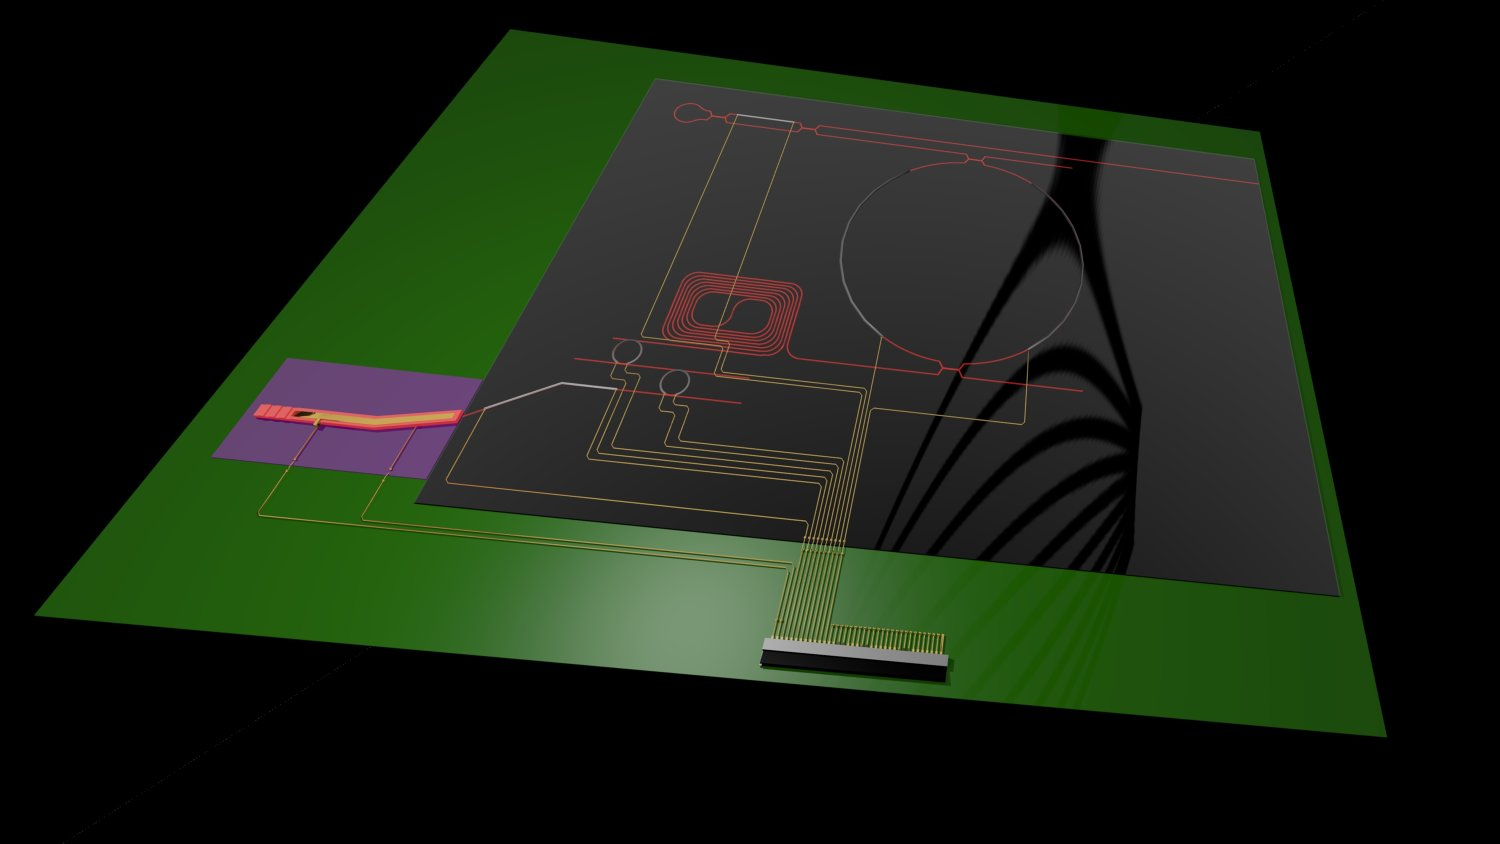 University of Twente develops record laser on chip